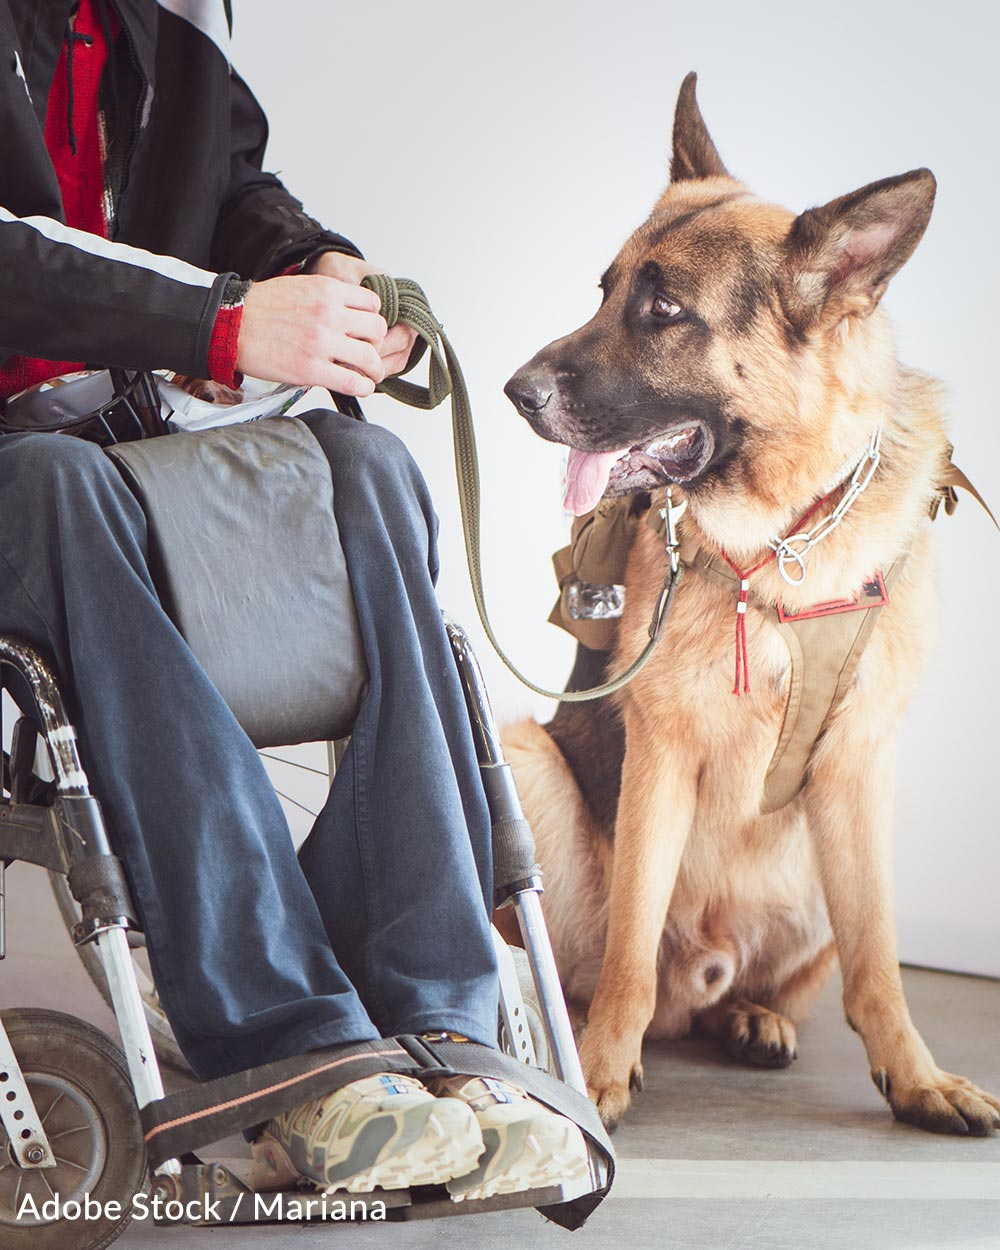 Celebrate Assistance Dogs Day By Taking A Pledge To Respect Their Important Work